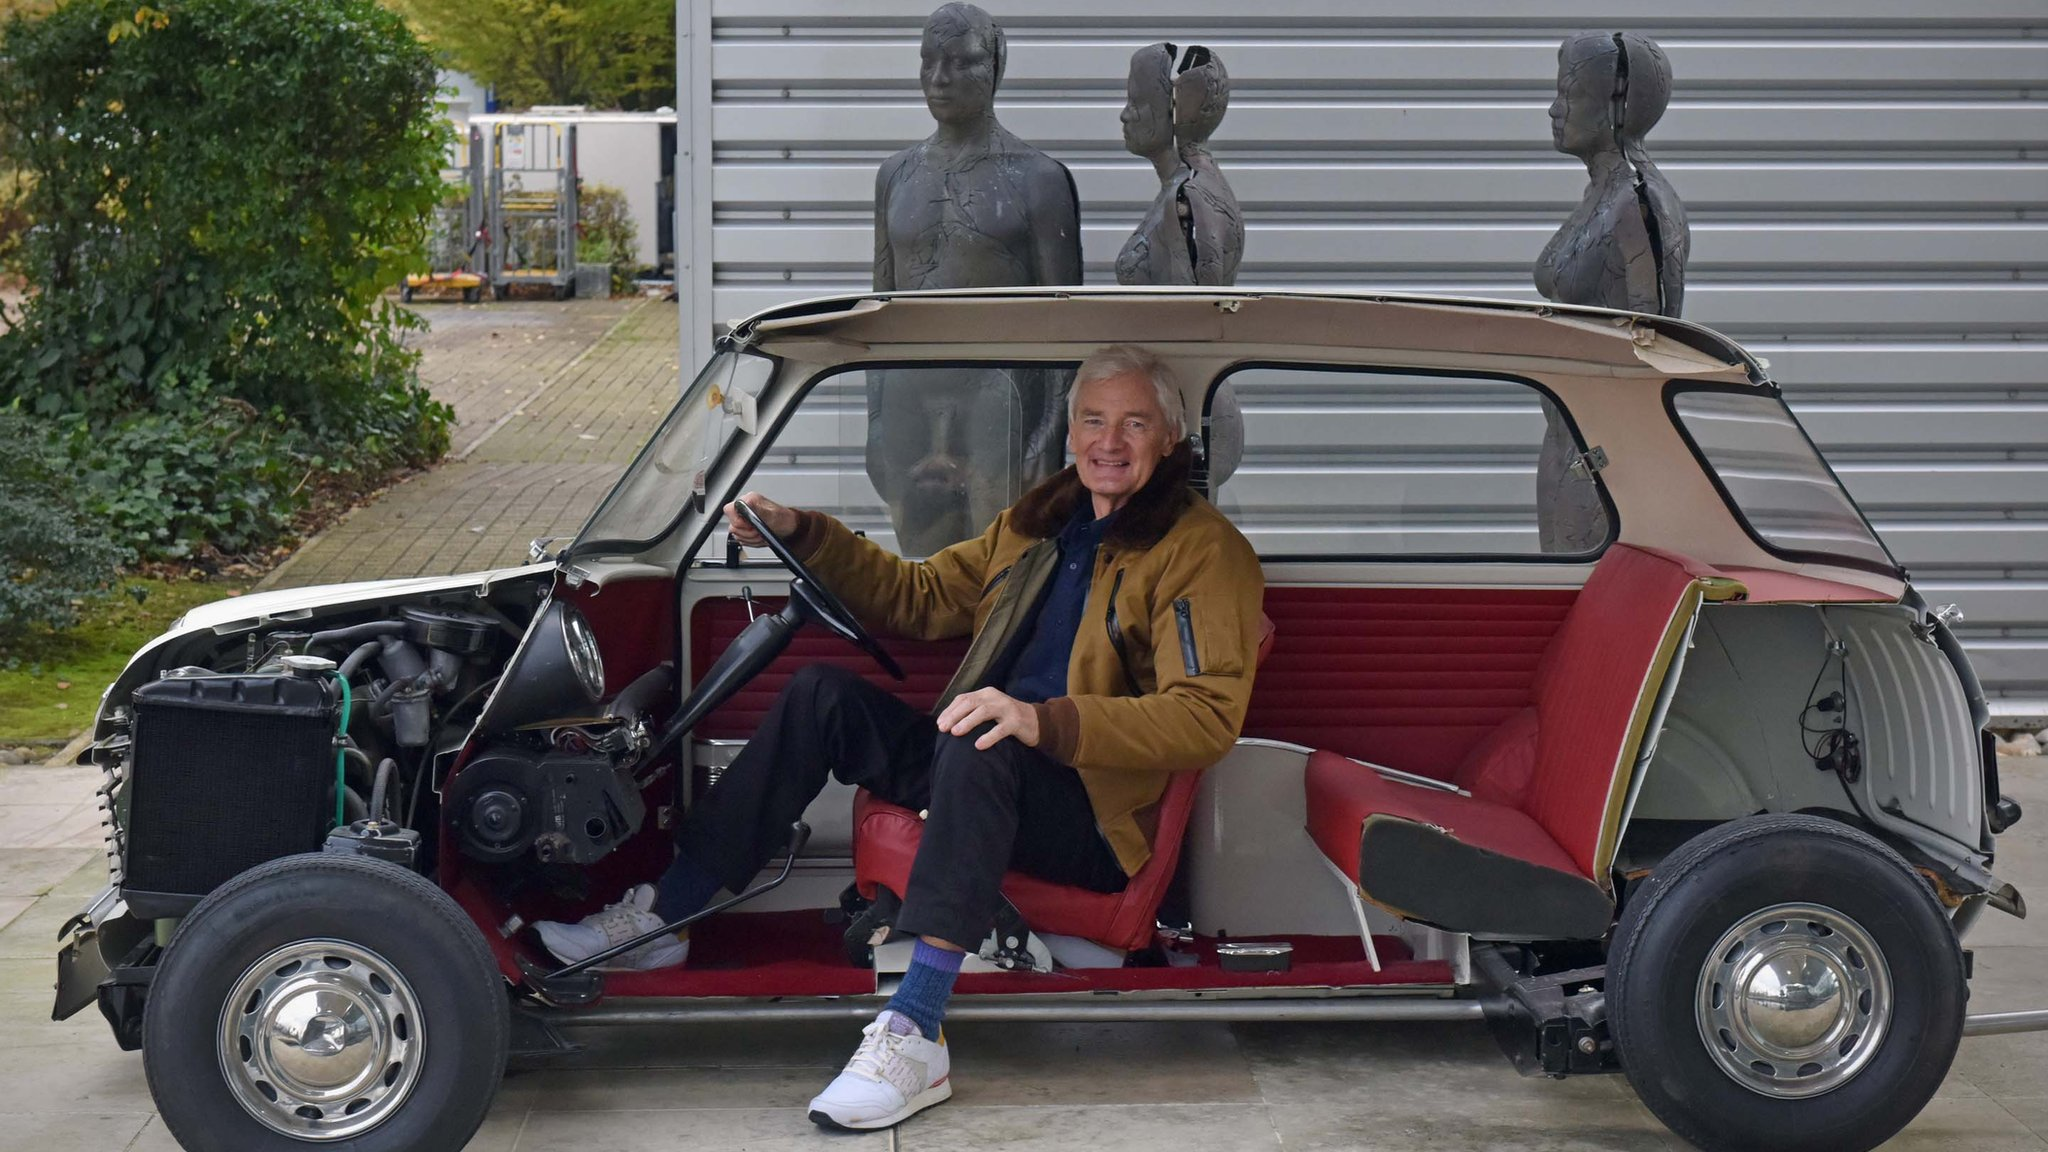 Dyson gears up for electric car testing